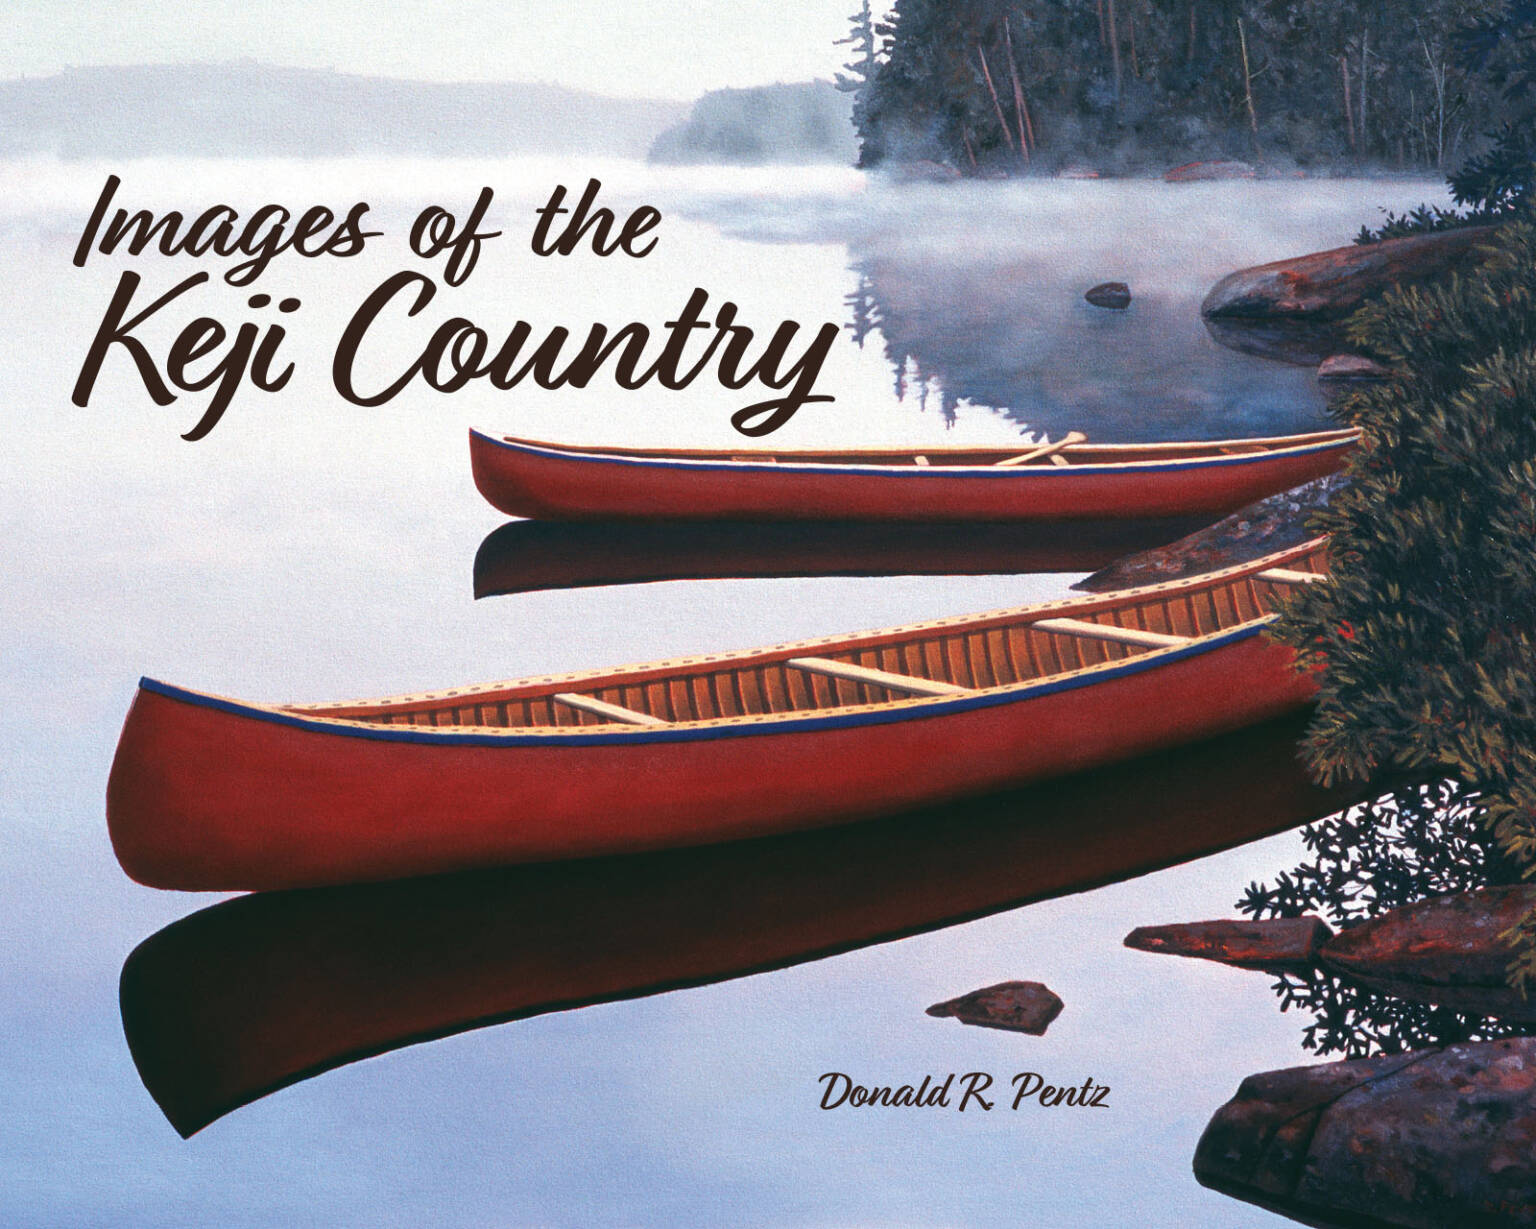 Images of the Keji Country